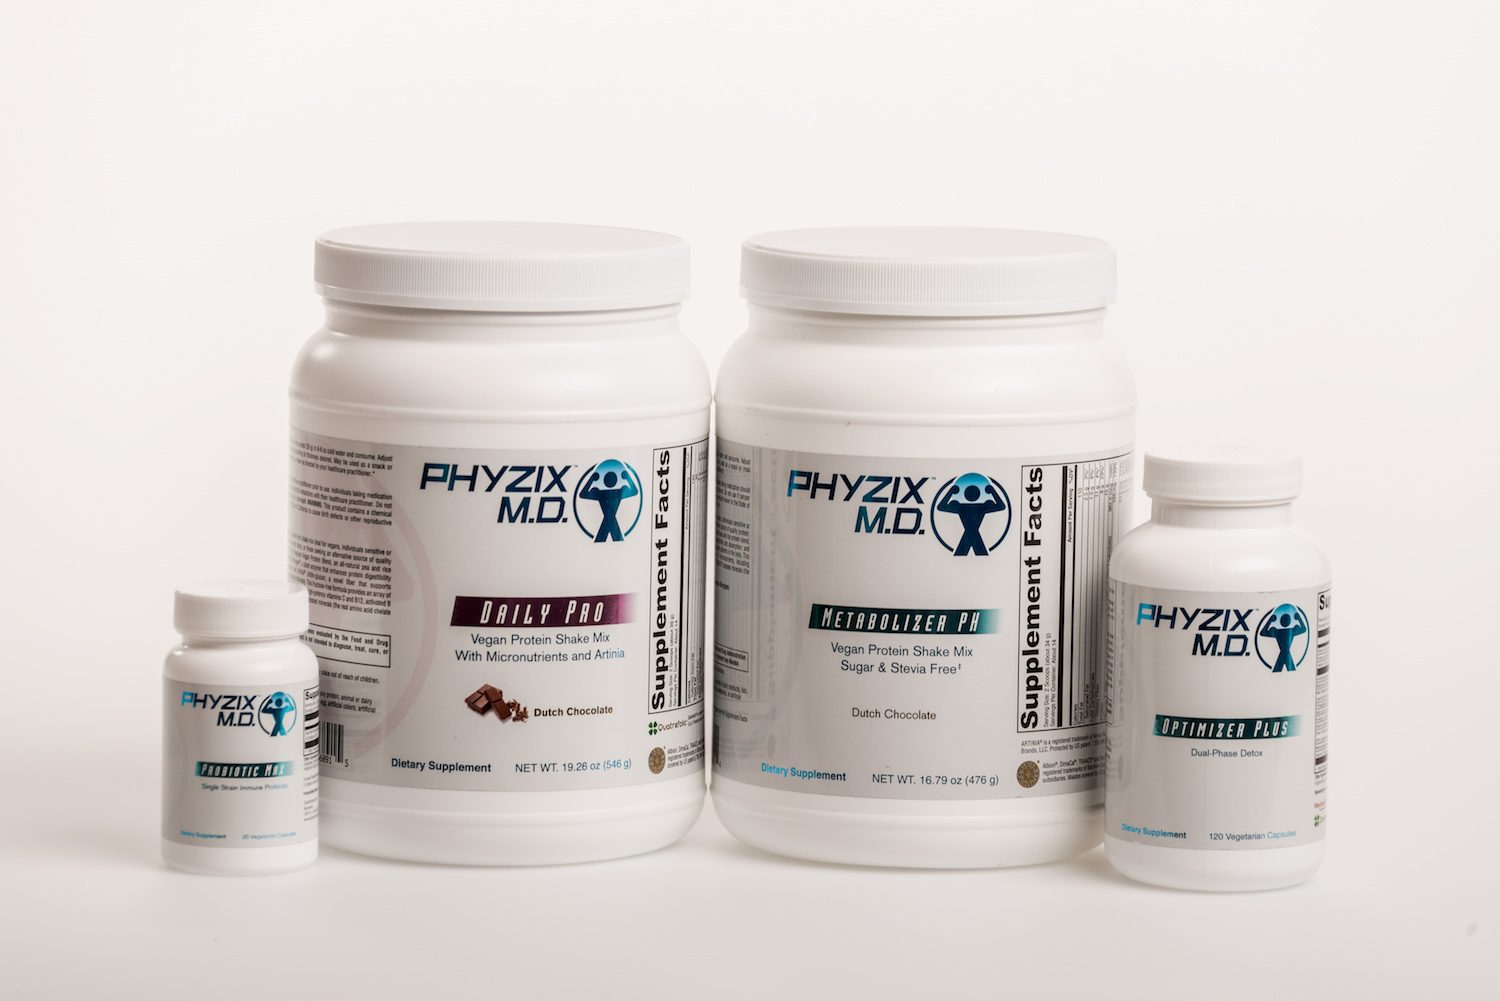 Pictured here is the Phyzix MD Cleanse product line.